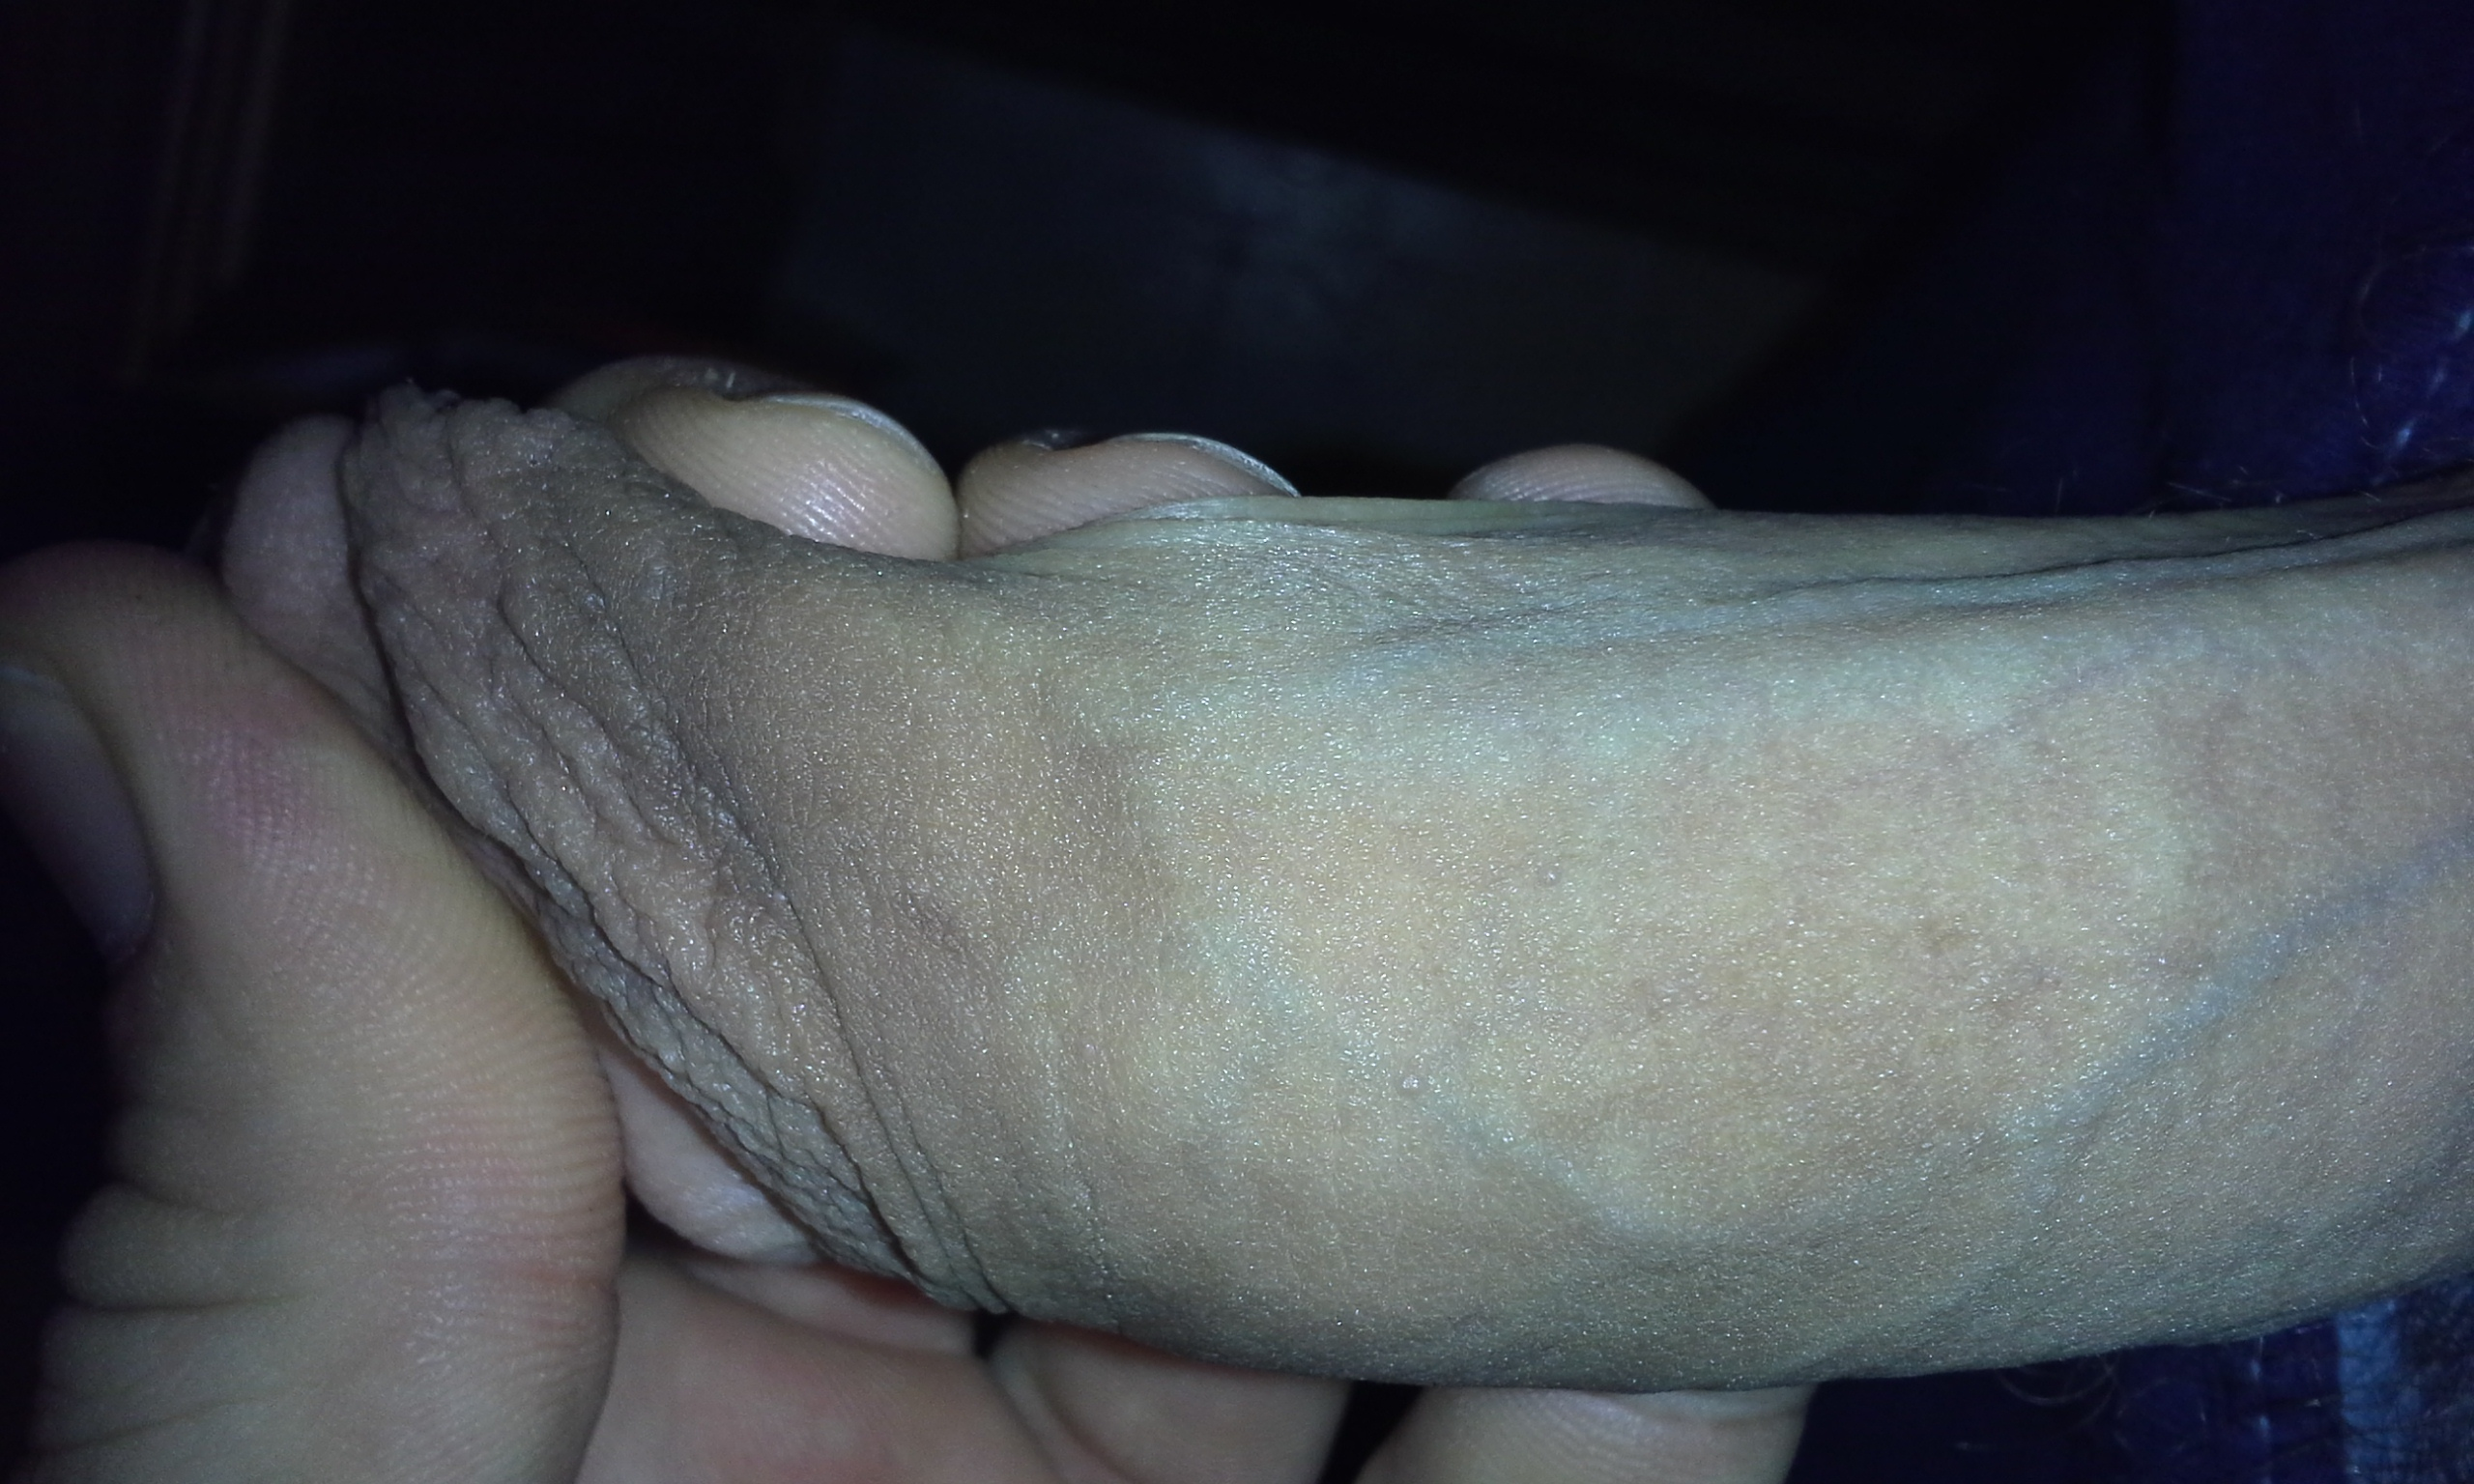 Pictures Of My Penis 106